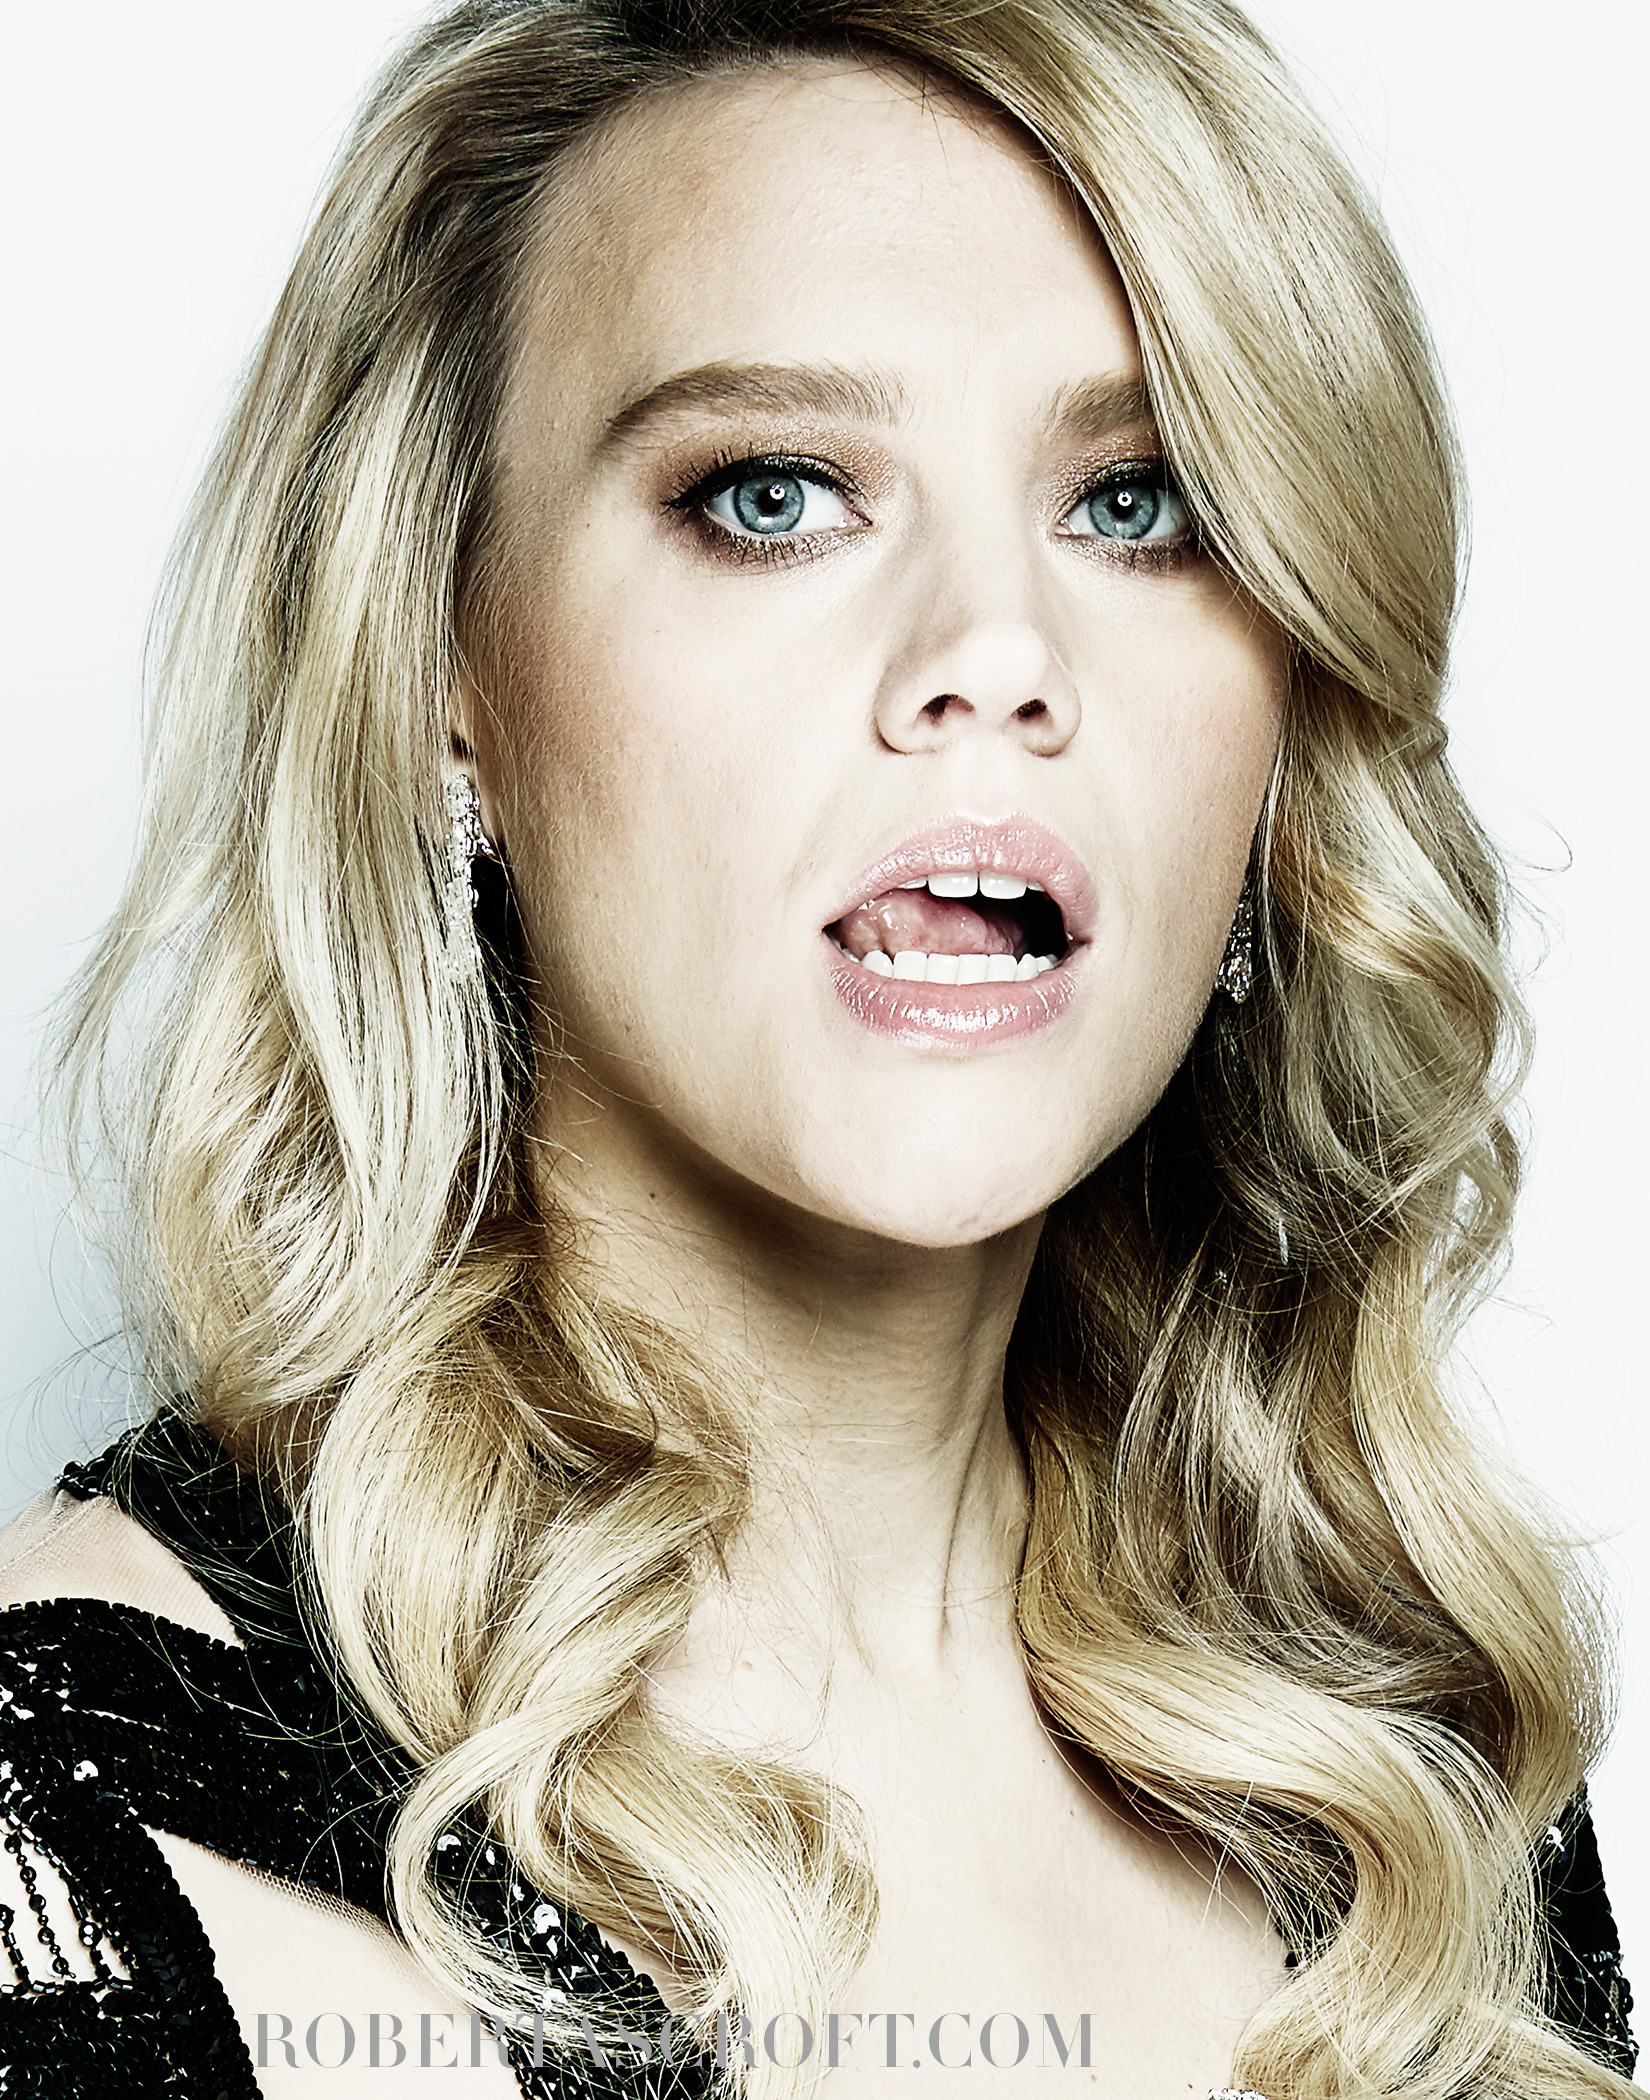 Kate-MCKINNON-BY-ROBERT-ASCROFT